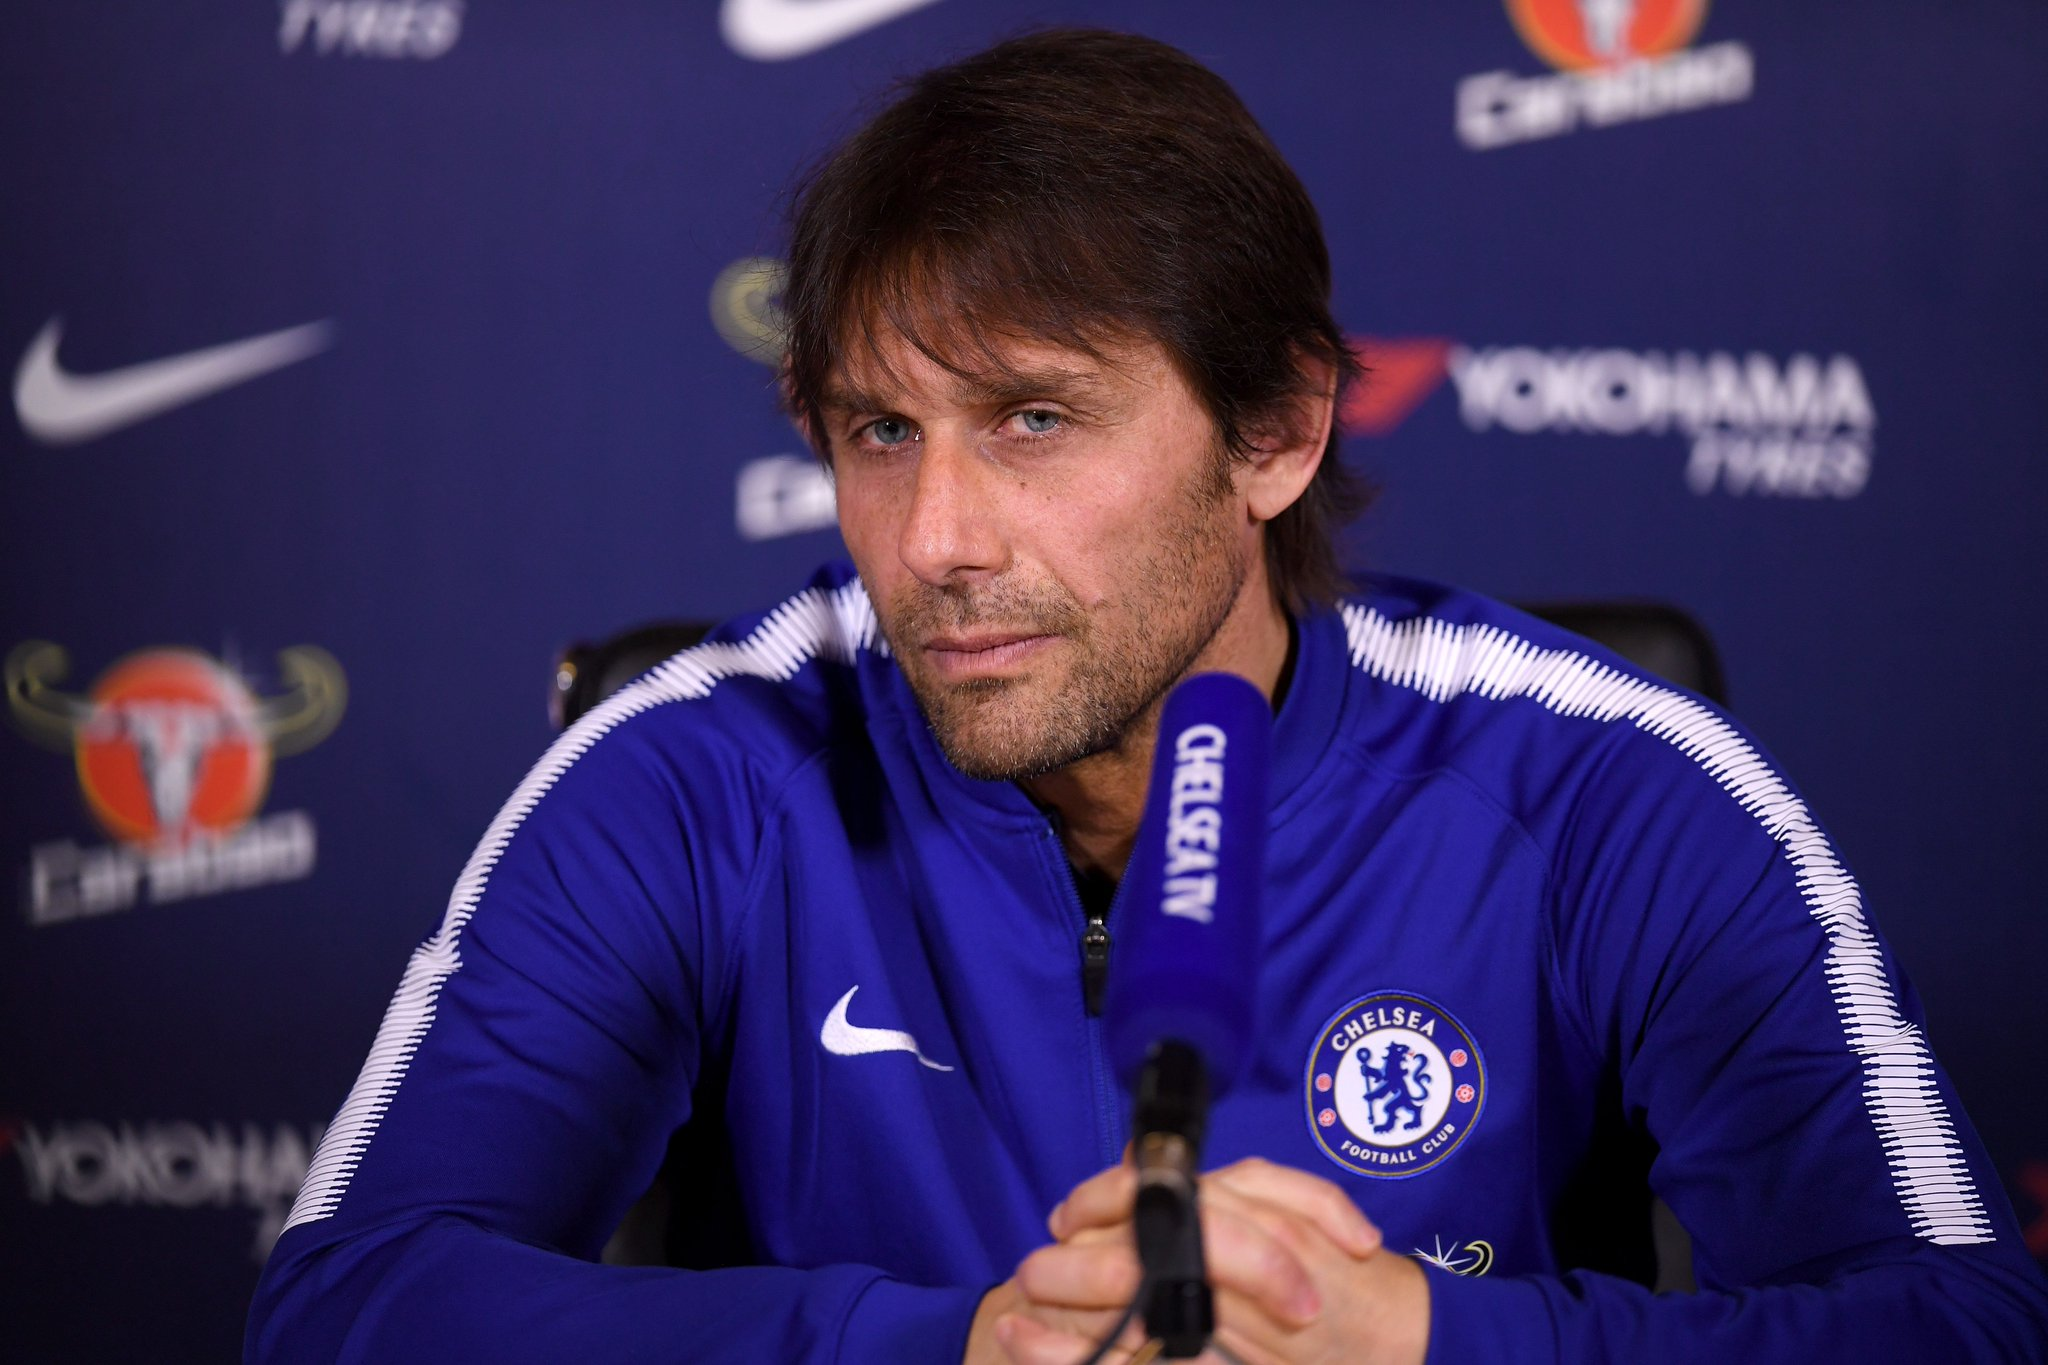 Antonio Conte will be live very shortly as we look ahead to Sunday's FA Cup tie!  Stay tuned... https://t.co/NIFlzSqs0e